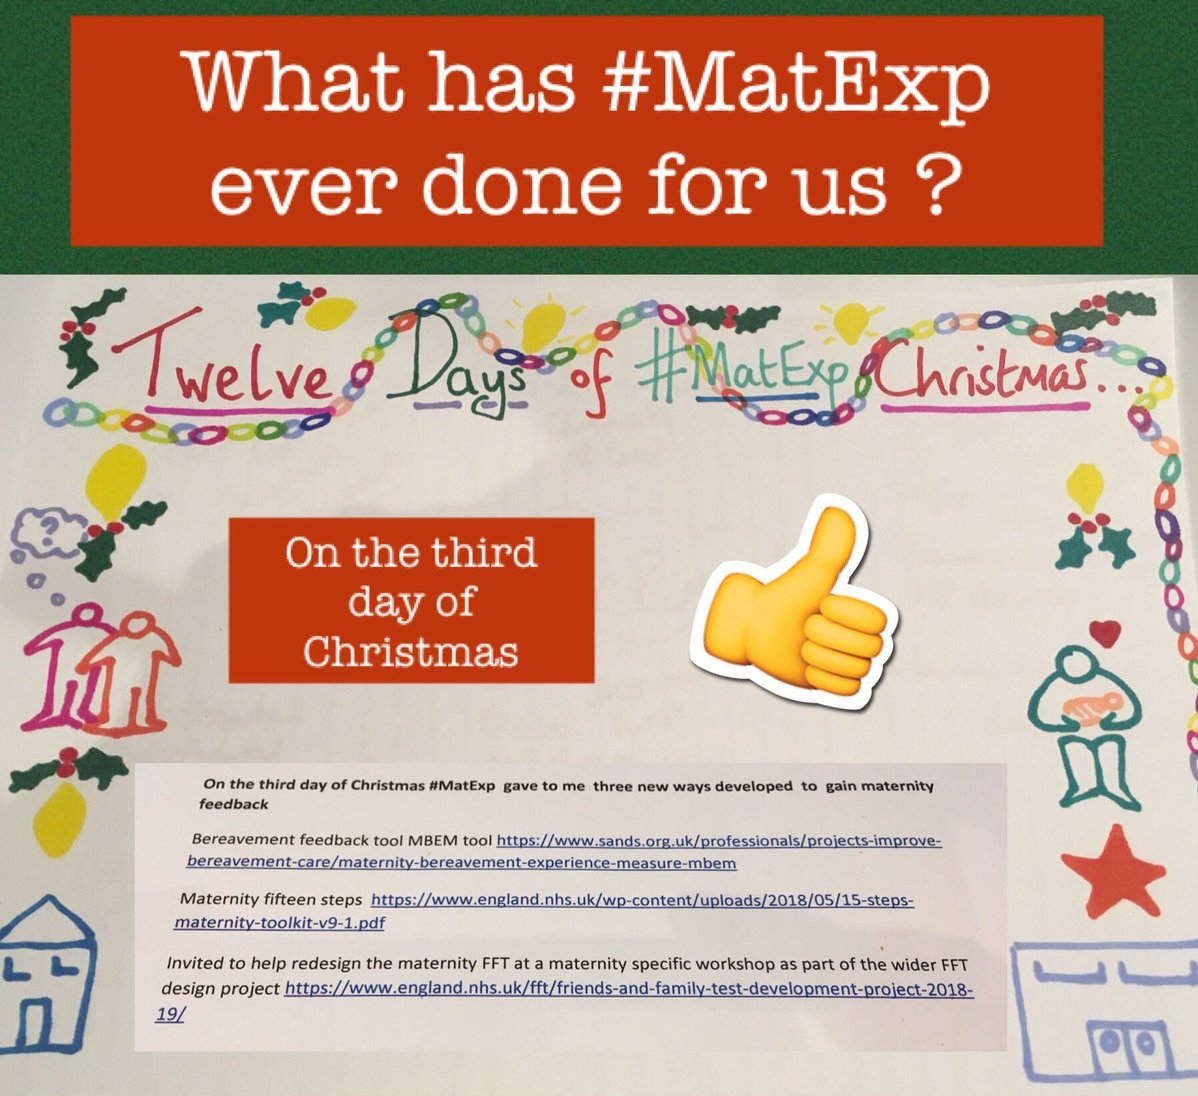 MatExp 12 days of Christmas Day 3